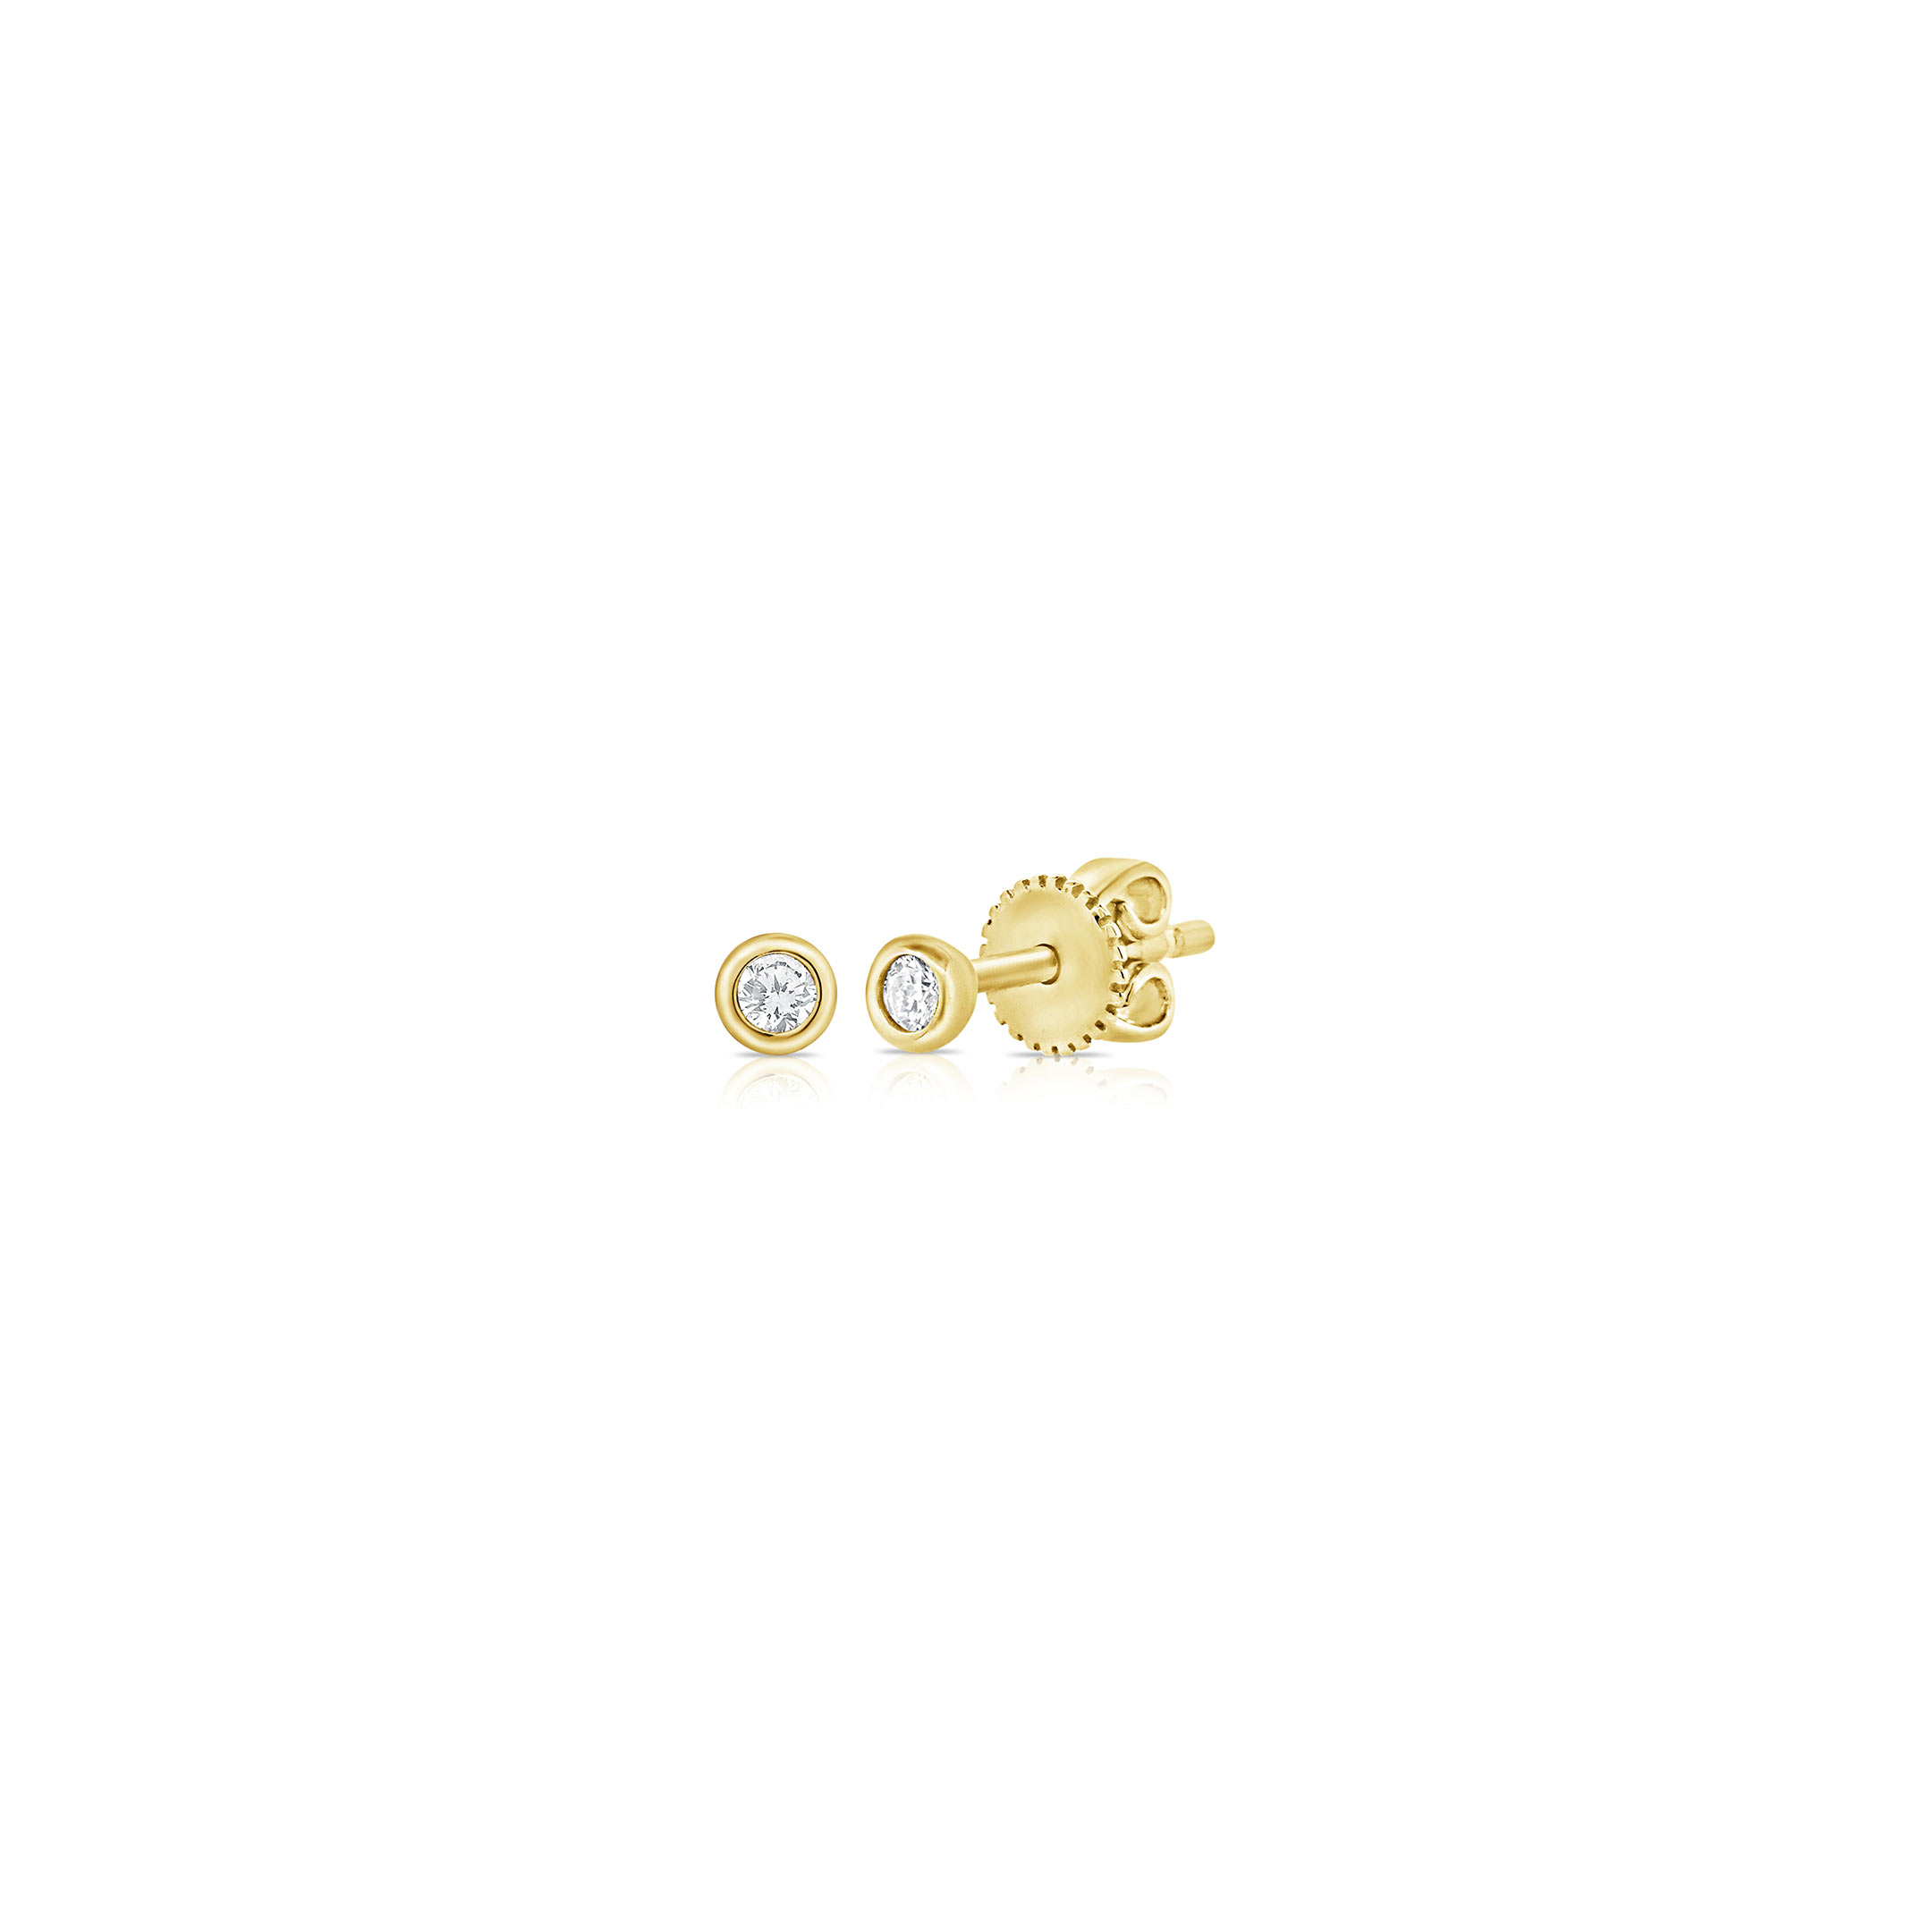 Perfect Jewelry Gift SS NY Small State Earring